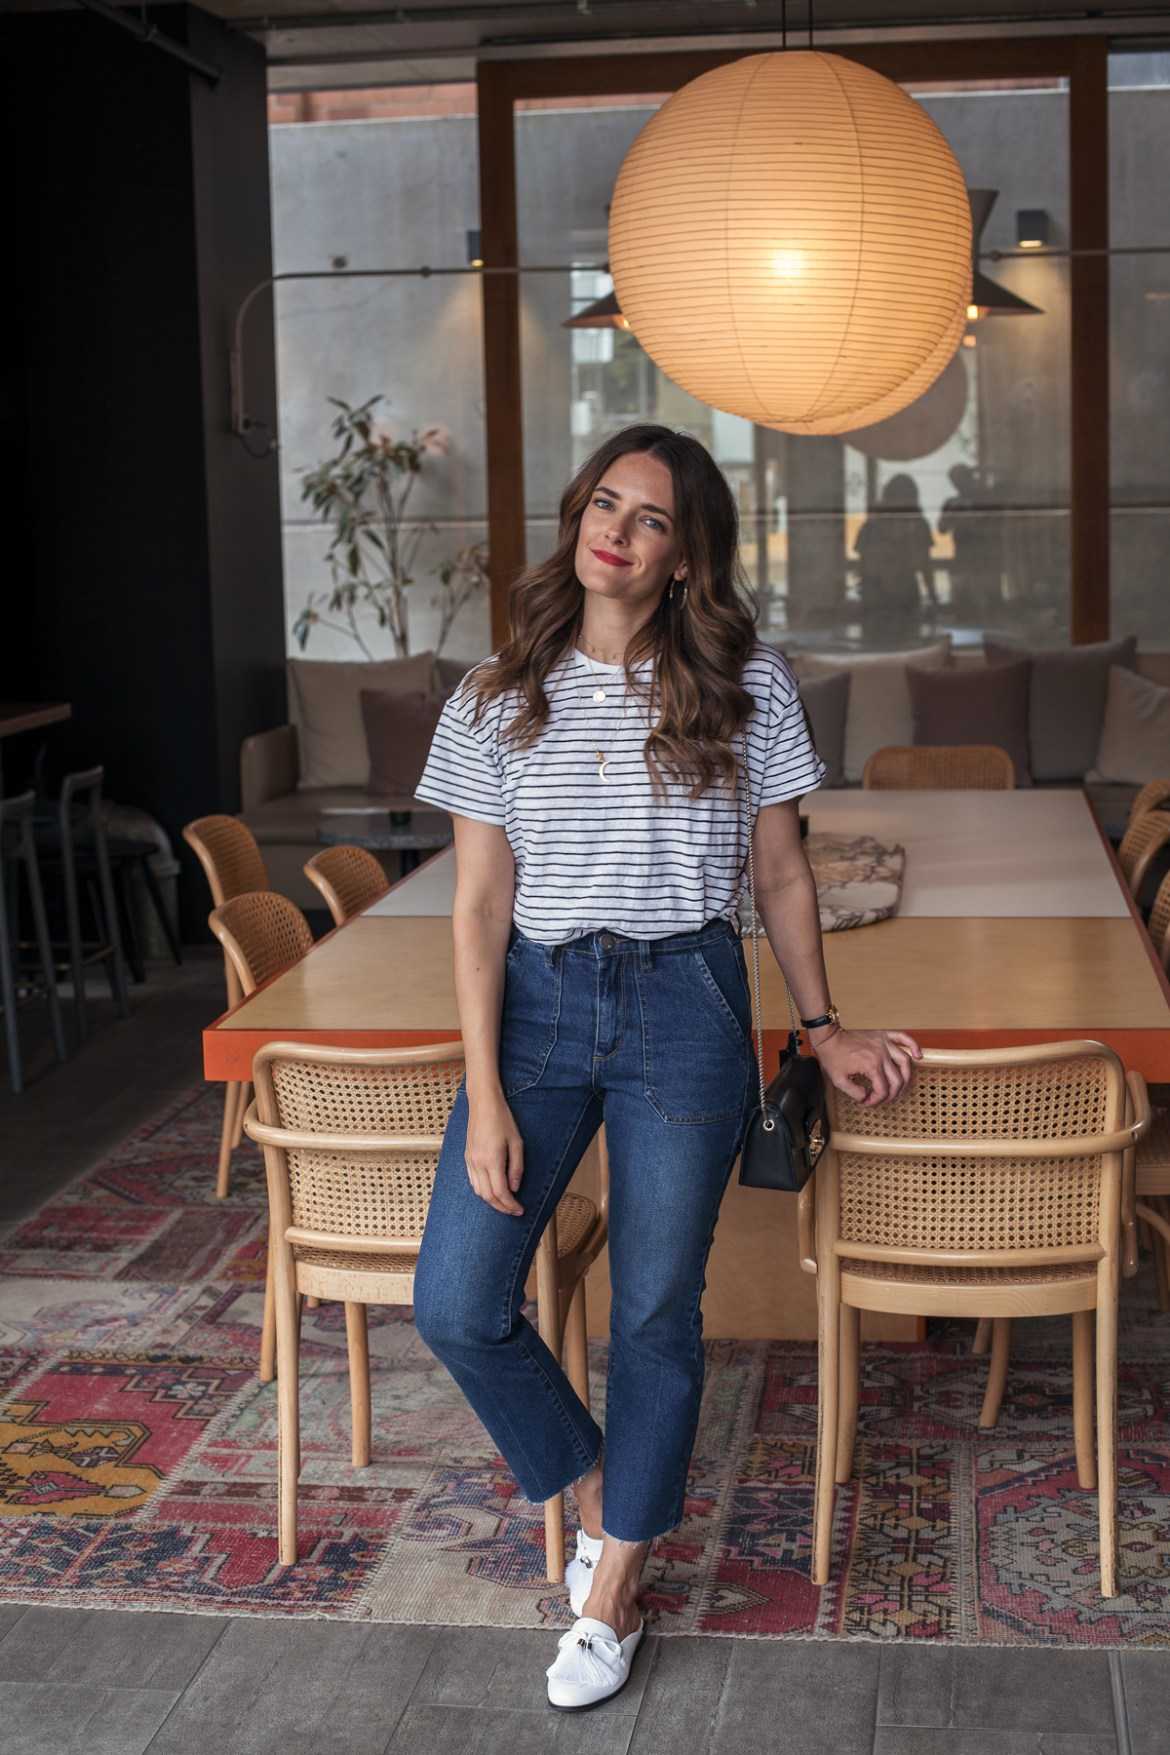 Cotton On denim edit worn by blogger Jenelle of Inspiring Wit. Wearing striped t-shirt, gold necklaces and indigo jeans at Alex Hotel Perth communal table with rattan chairs